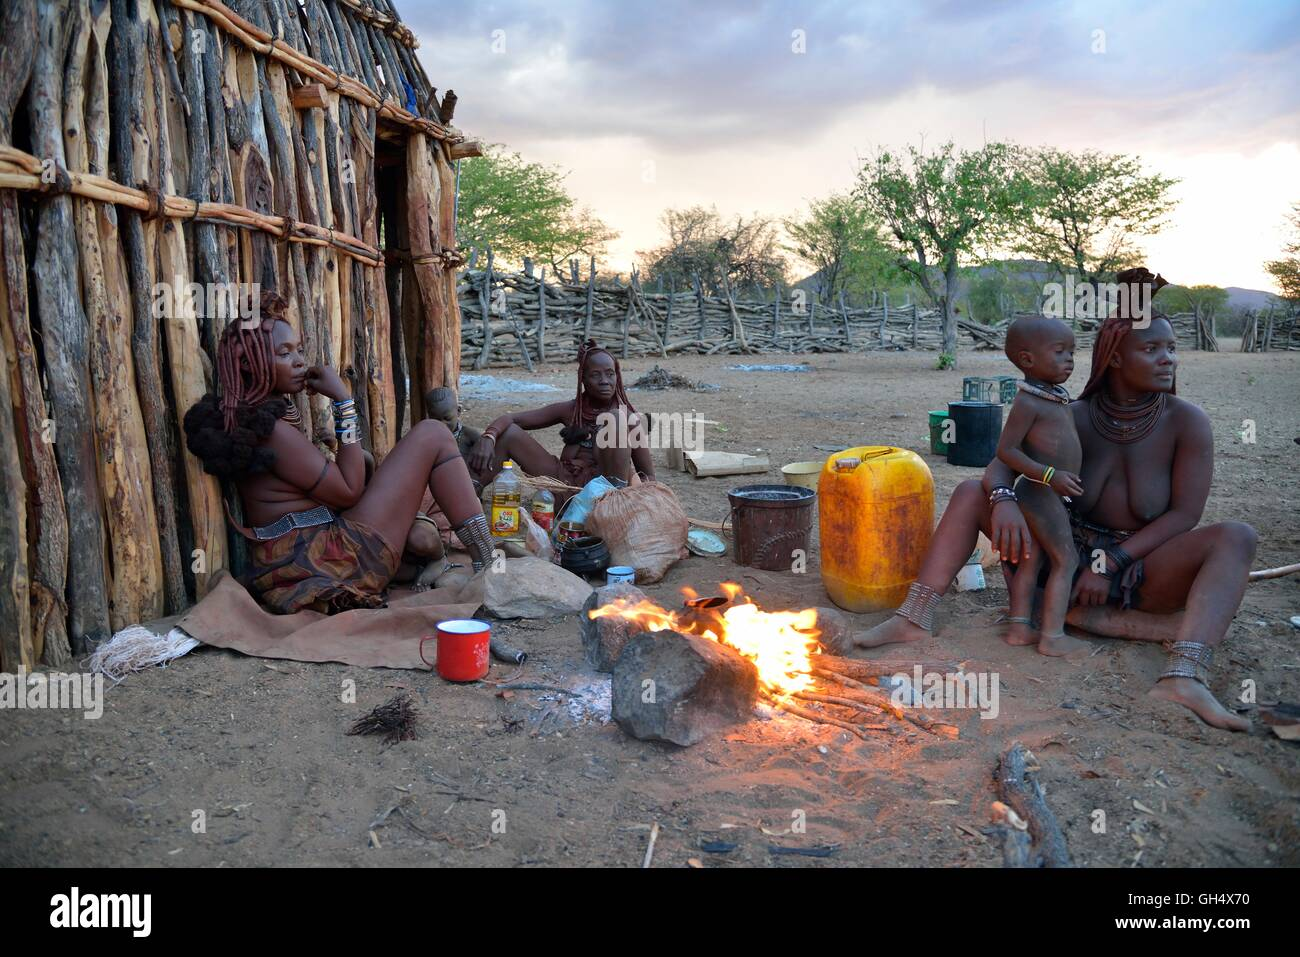 geography / travel, Namibia, Himba women at fire in her kraal in the village Omuramba, Kaokoveld, Africa, Additional - Stock Image